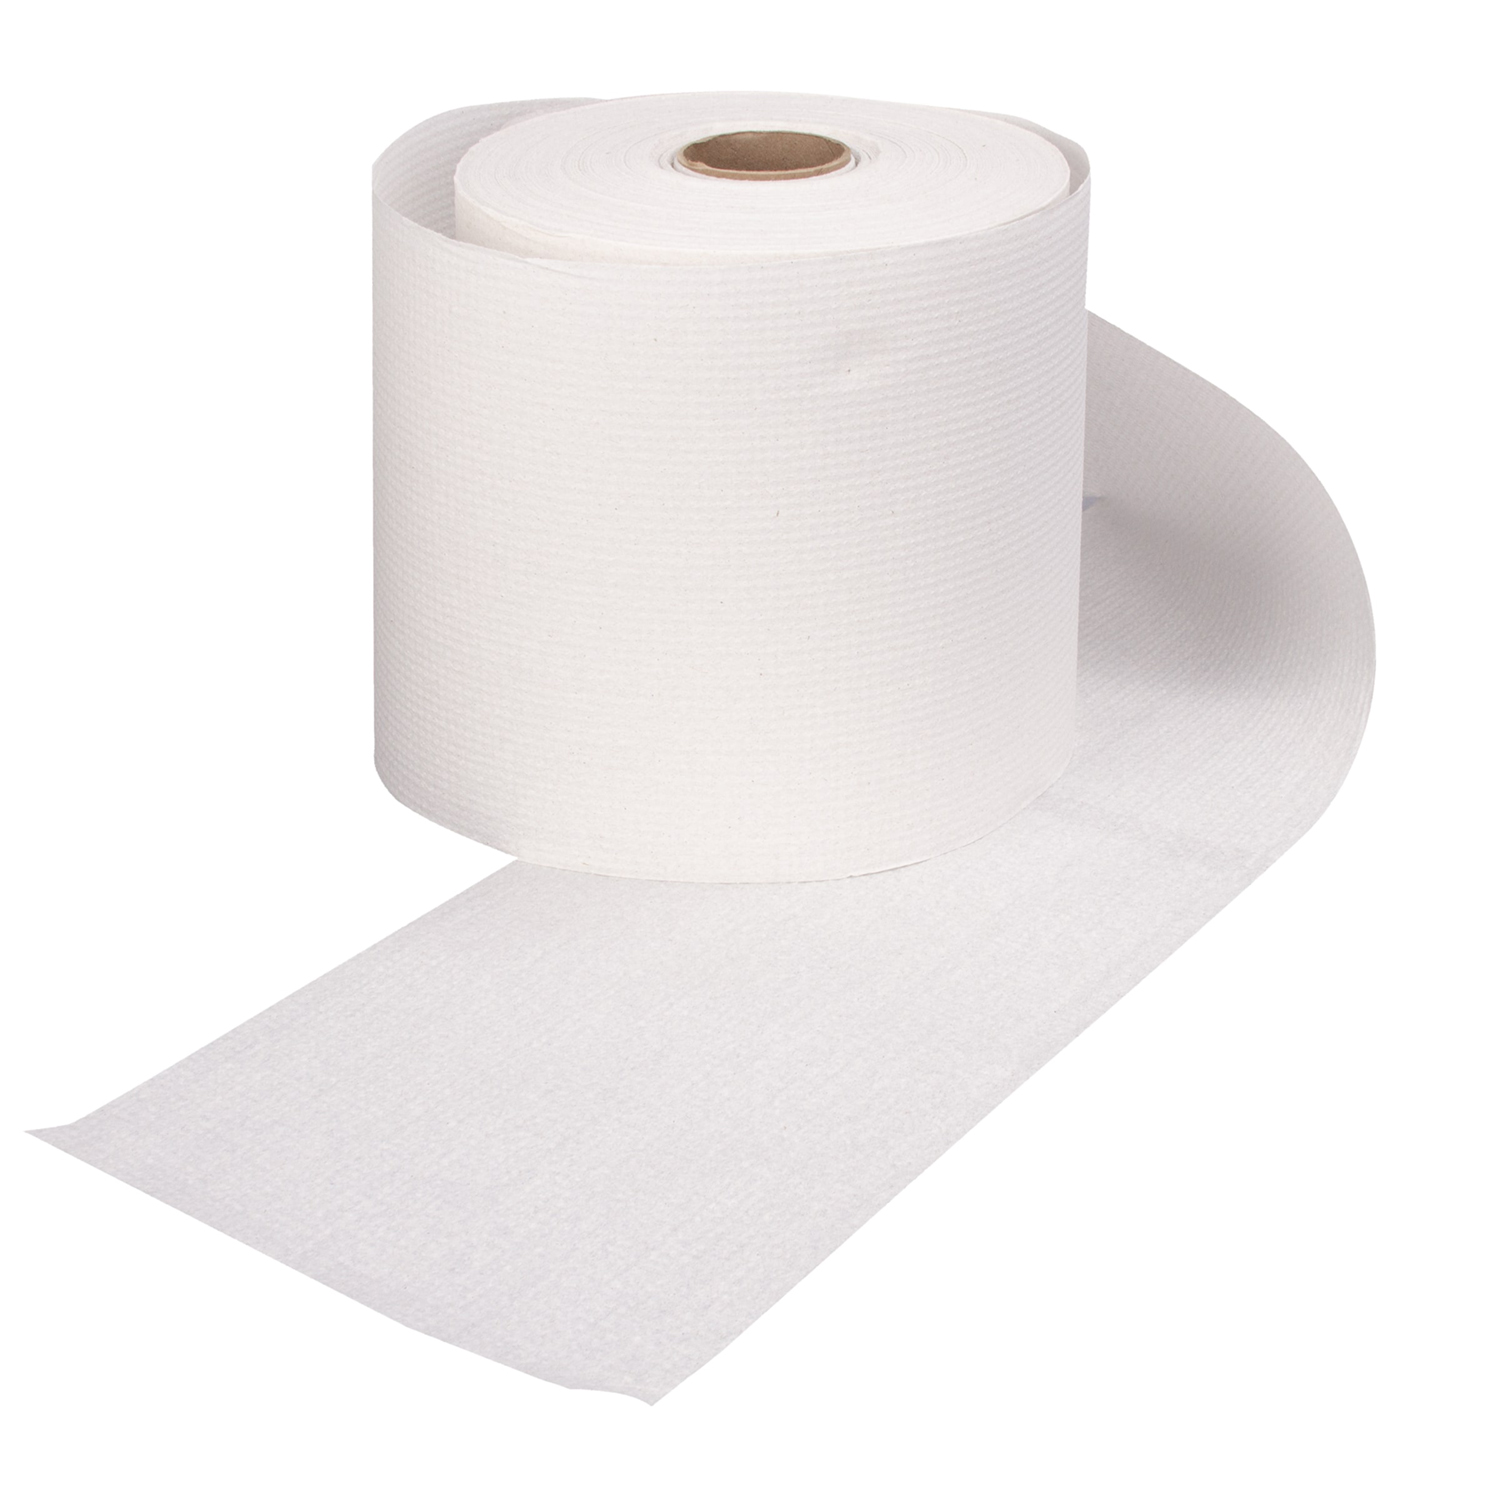 1185 Right Choice™ White Hardwound Roll Towel (700')